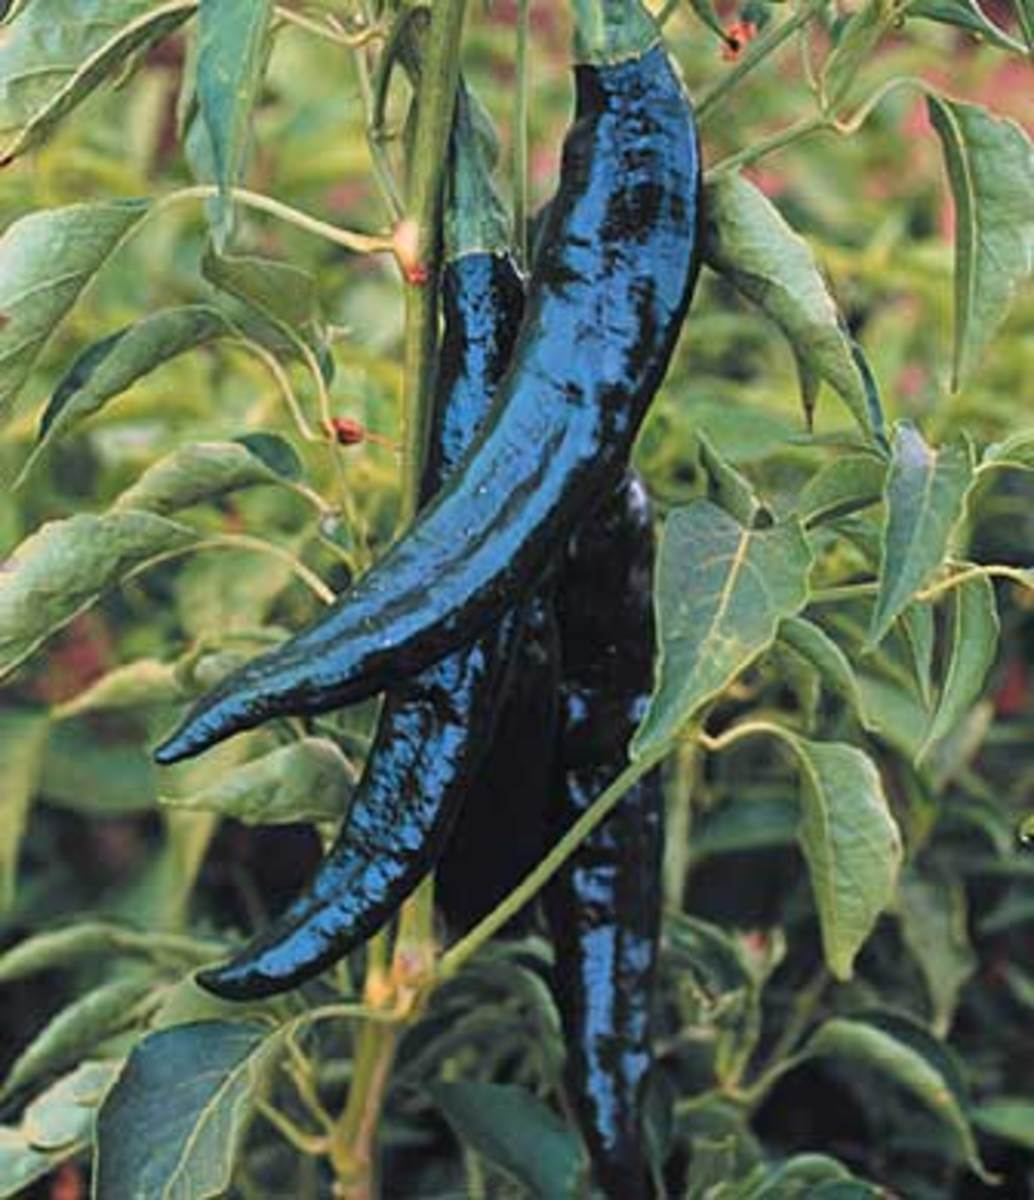 Pasilla Bajio - When fresh, this pepper is called 'chilaca;' it is also known as 'chile negro.' 8 to 10 inch long cylindrical peppers are thin walled, and dark green ripening to dark brown. They have less than 250 Scoville units.